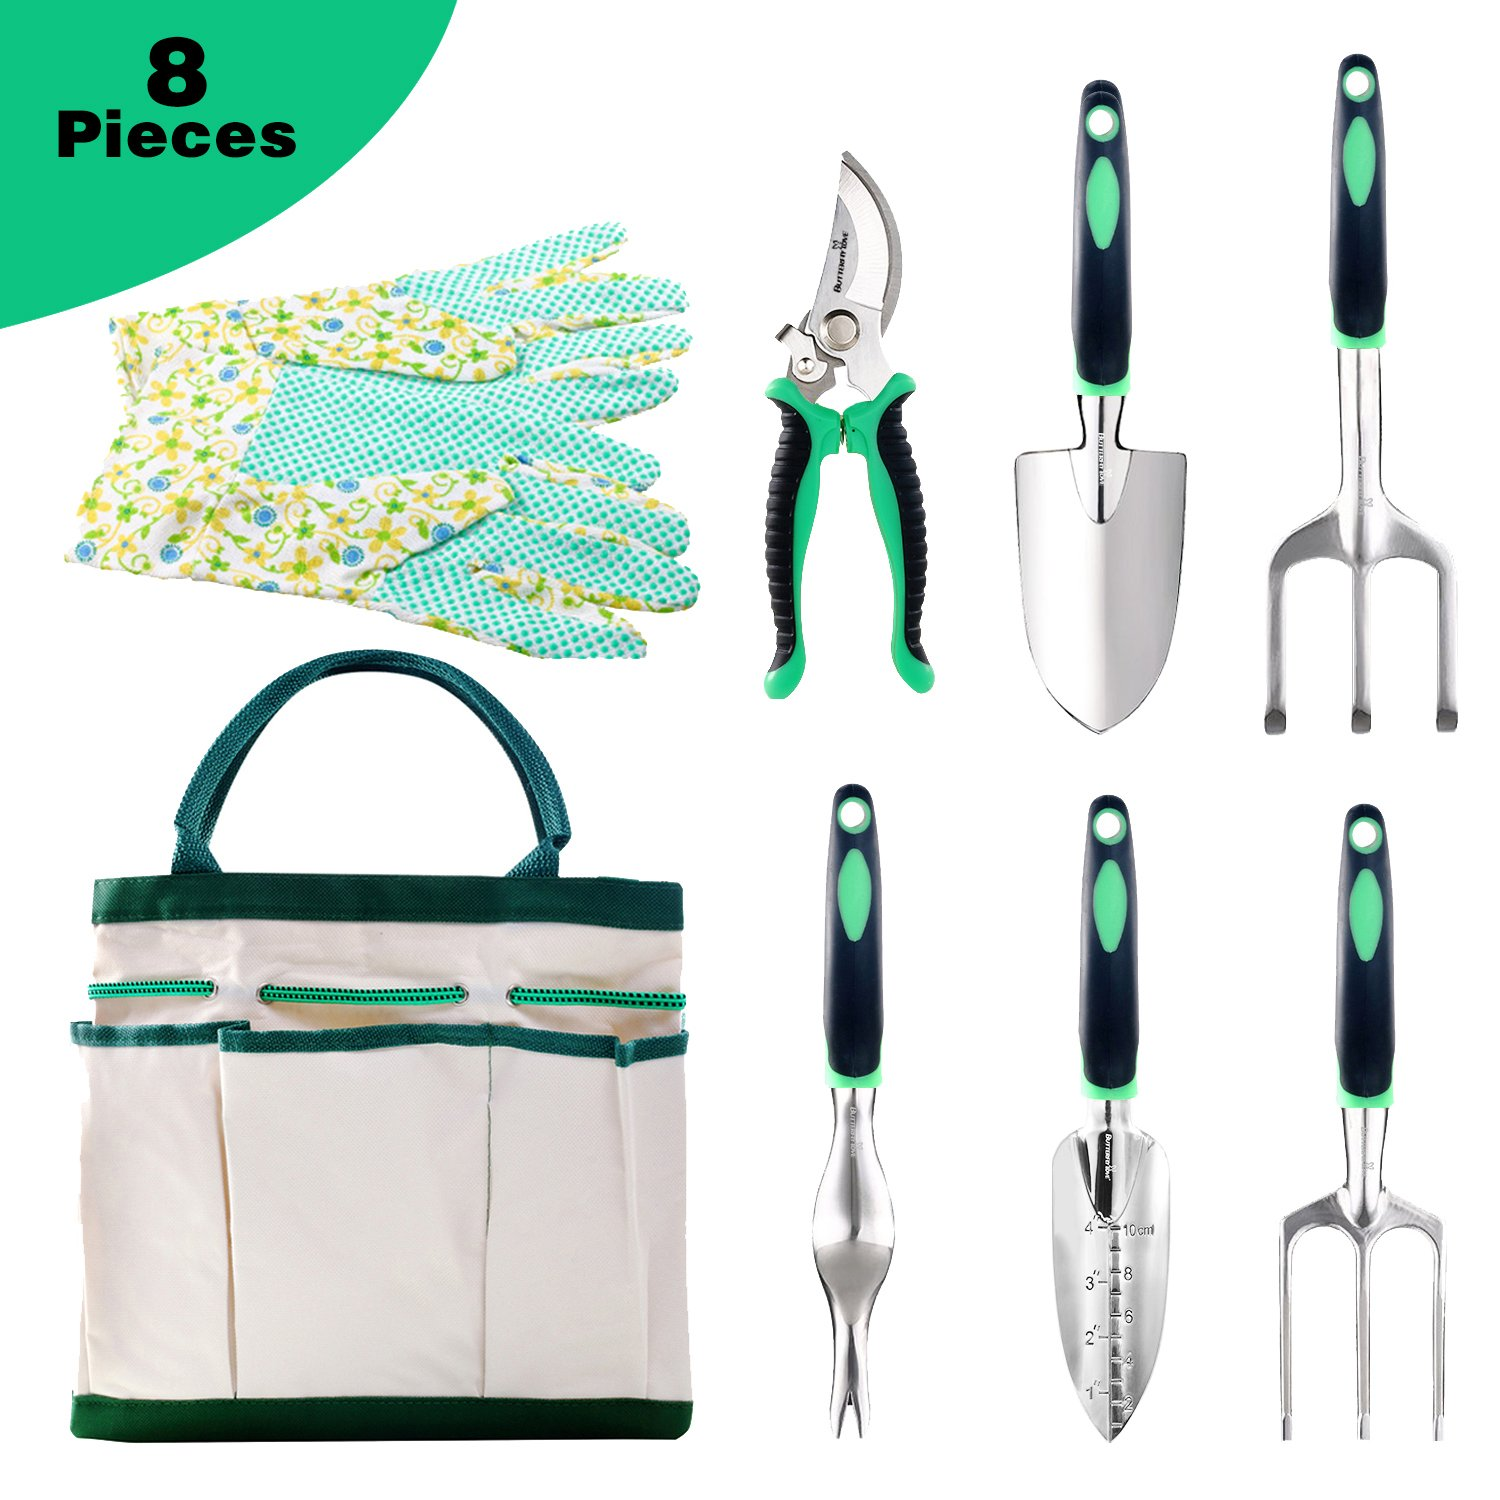 Butterfly Love Garden Tool Set, 6 Piece Stainless Steel Heavy Duty Gardening Kit with Soft Rubberized Non-Slip Handle -Durable Storage Tote Bag and Gloves for Digging Planting